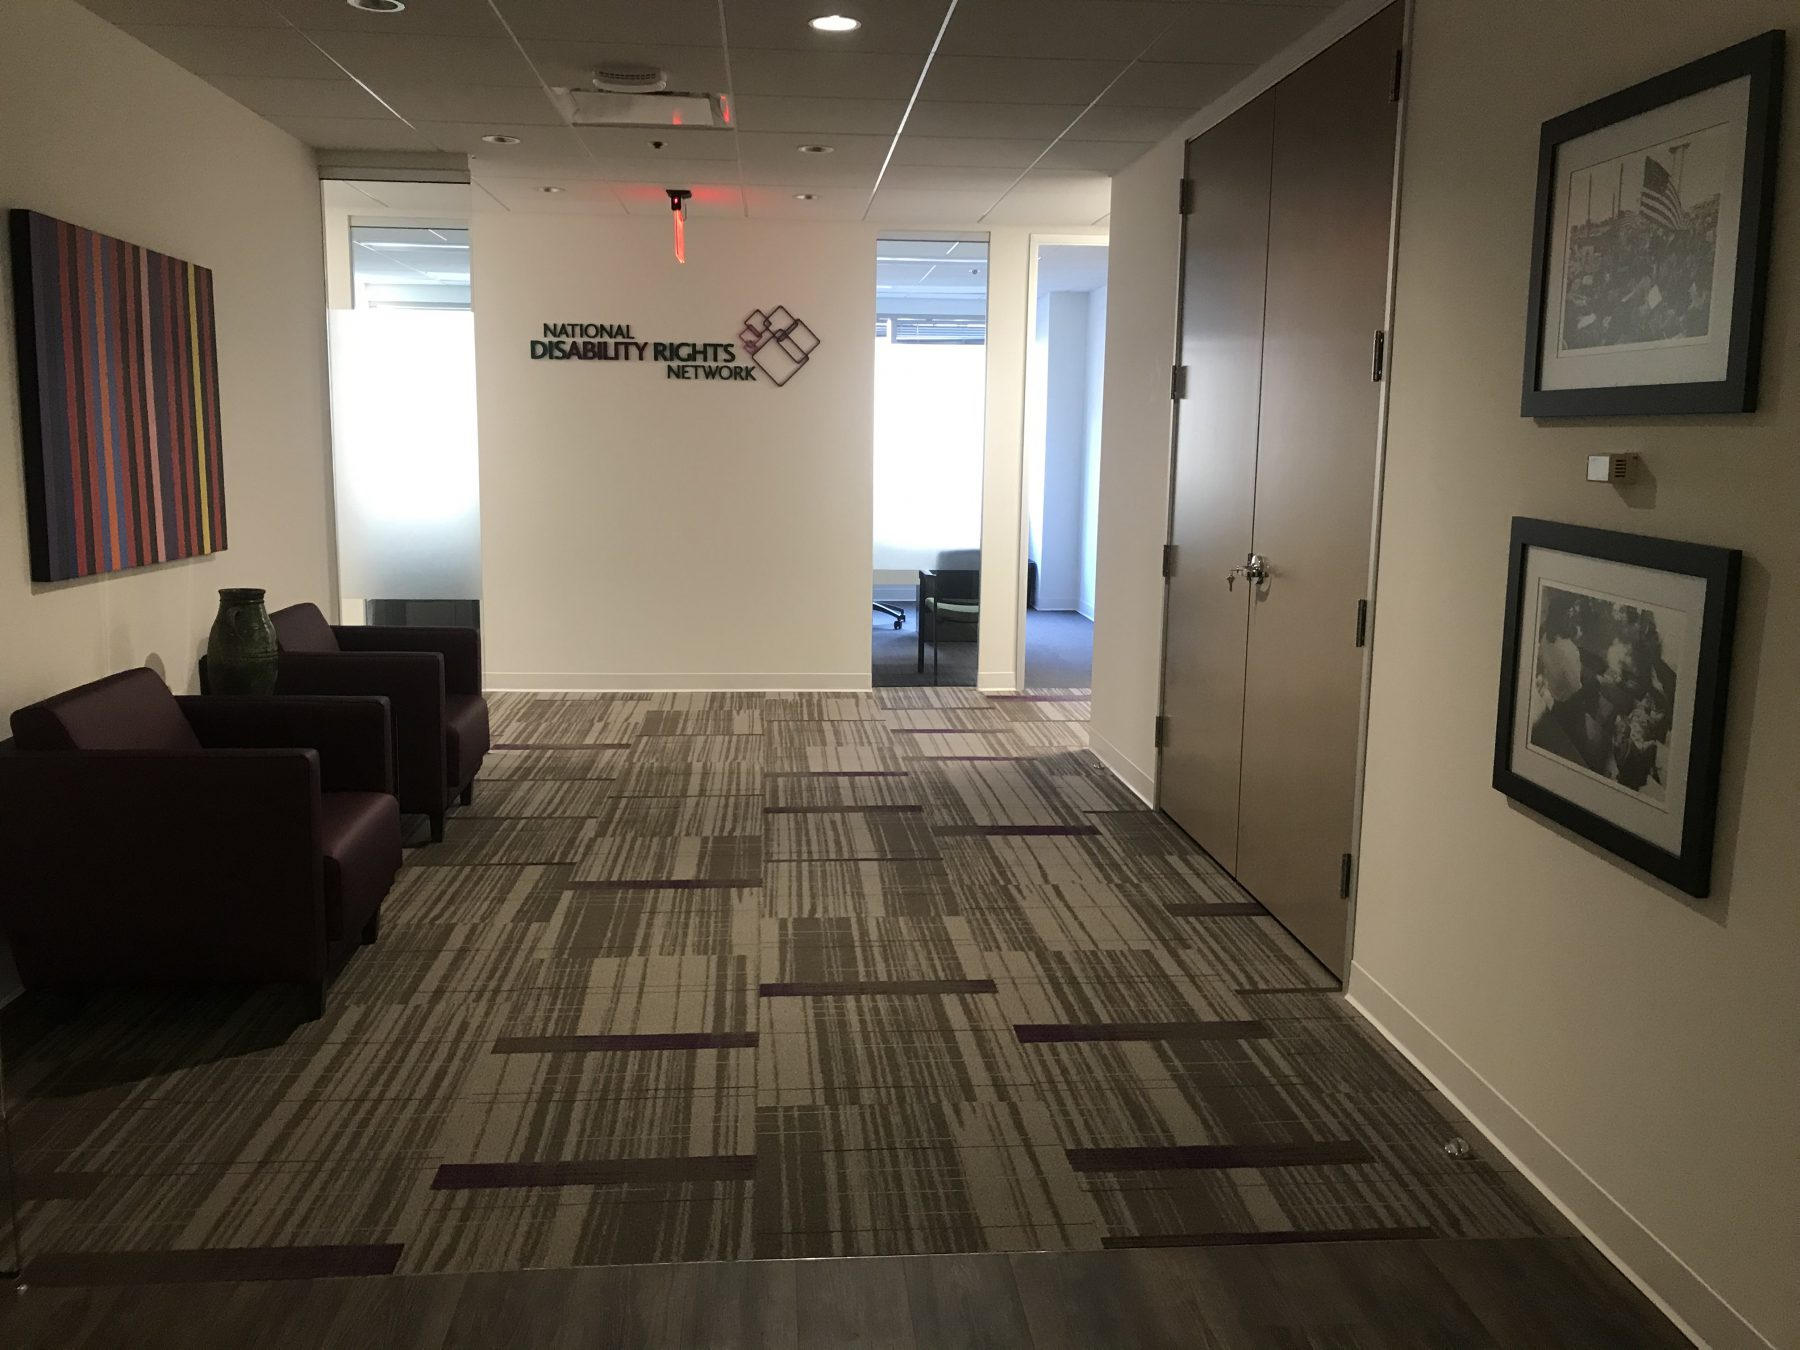 Lobby with the National Disability Rights Network logo on the wall and two Tom Olin black and white photos hung up